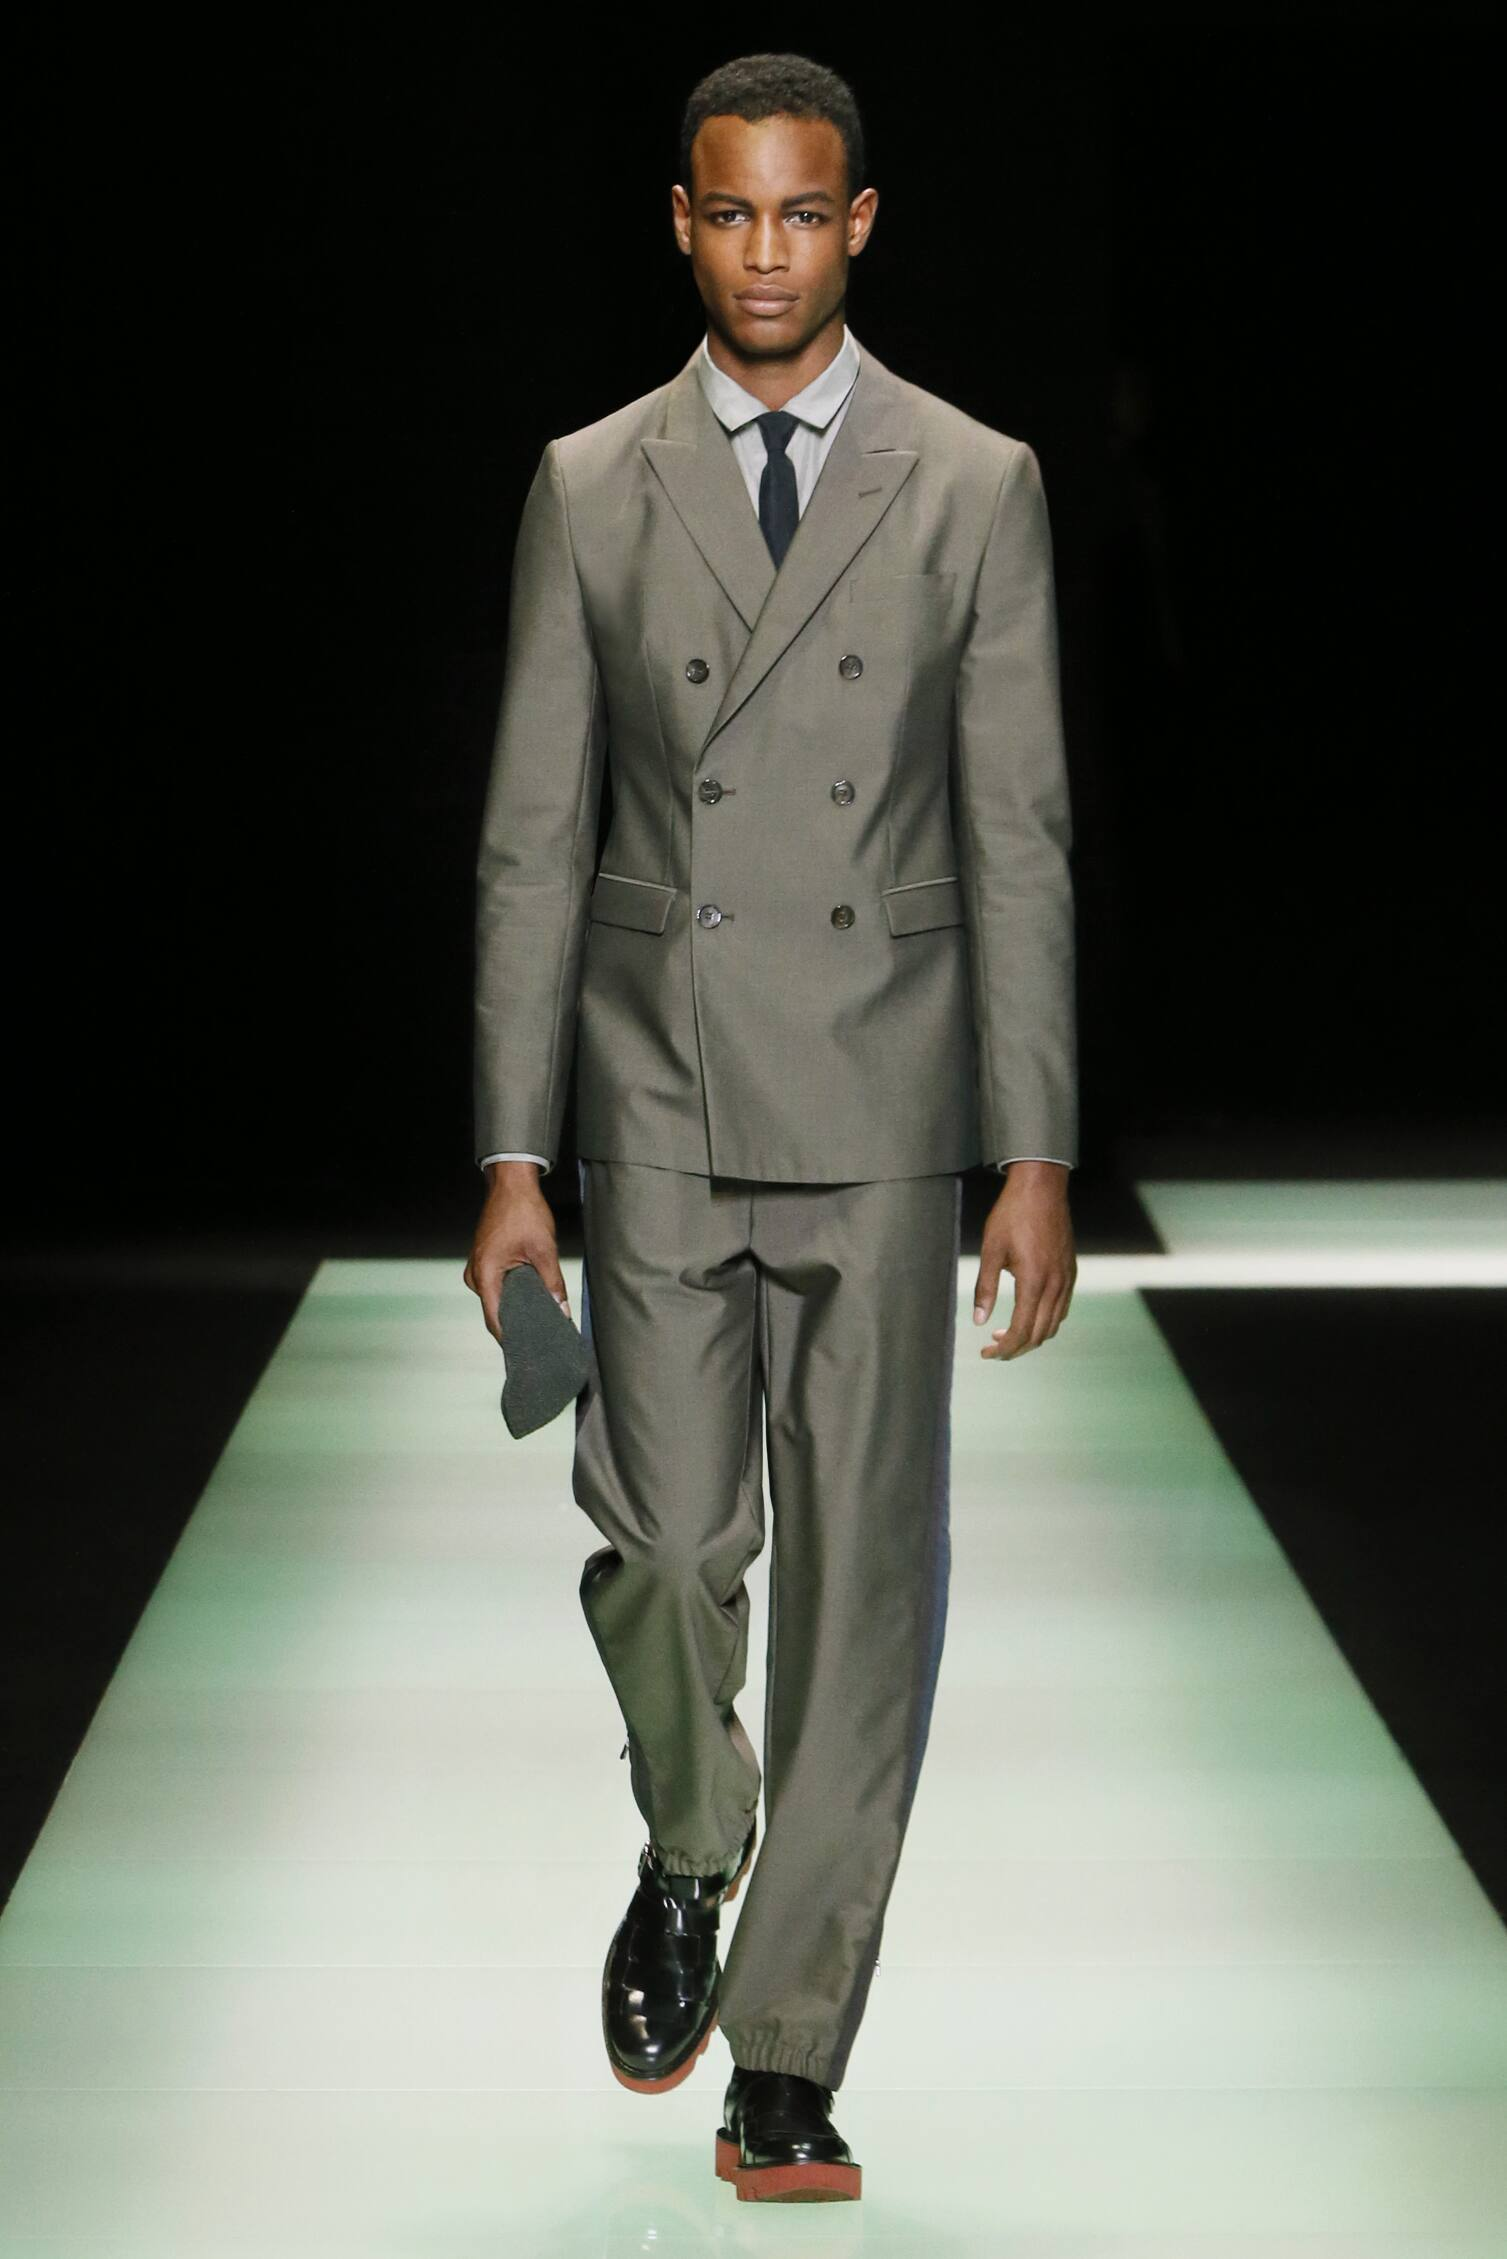 EMPORIO ARMANI SPRING SUMMER MEN'S COLLECTION